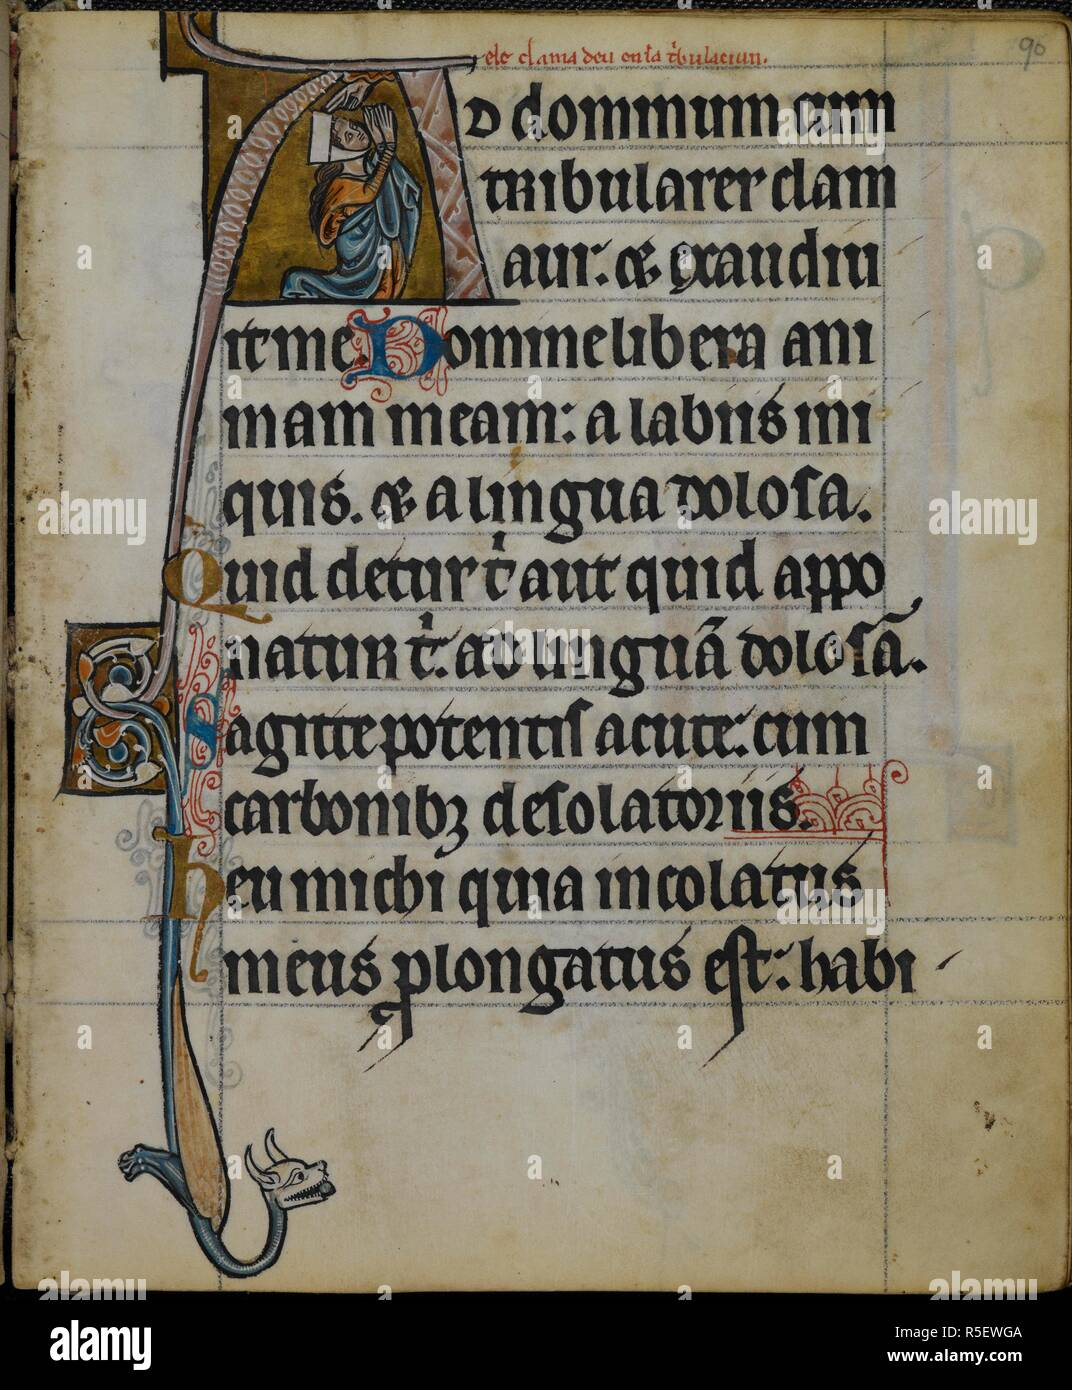 Historiated initial 'A'(d dominum) of Susanna praying (Psalm